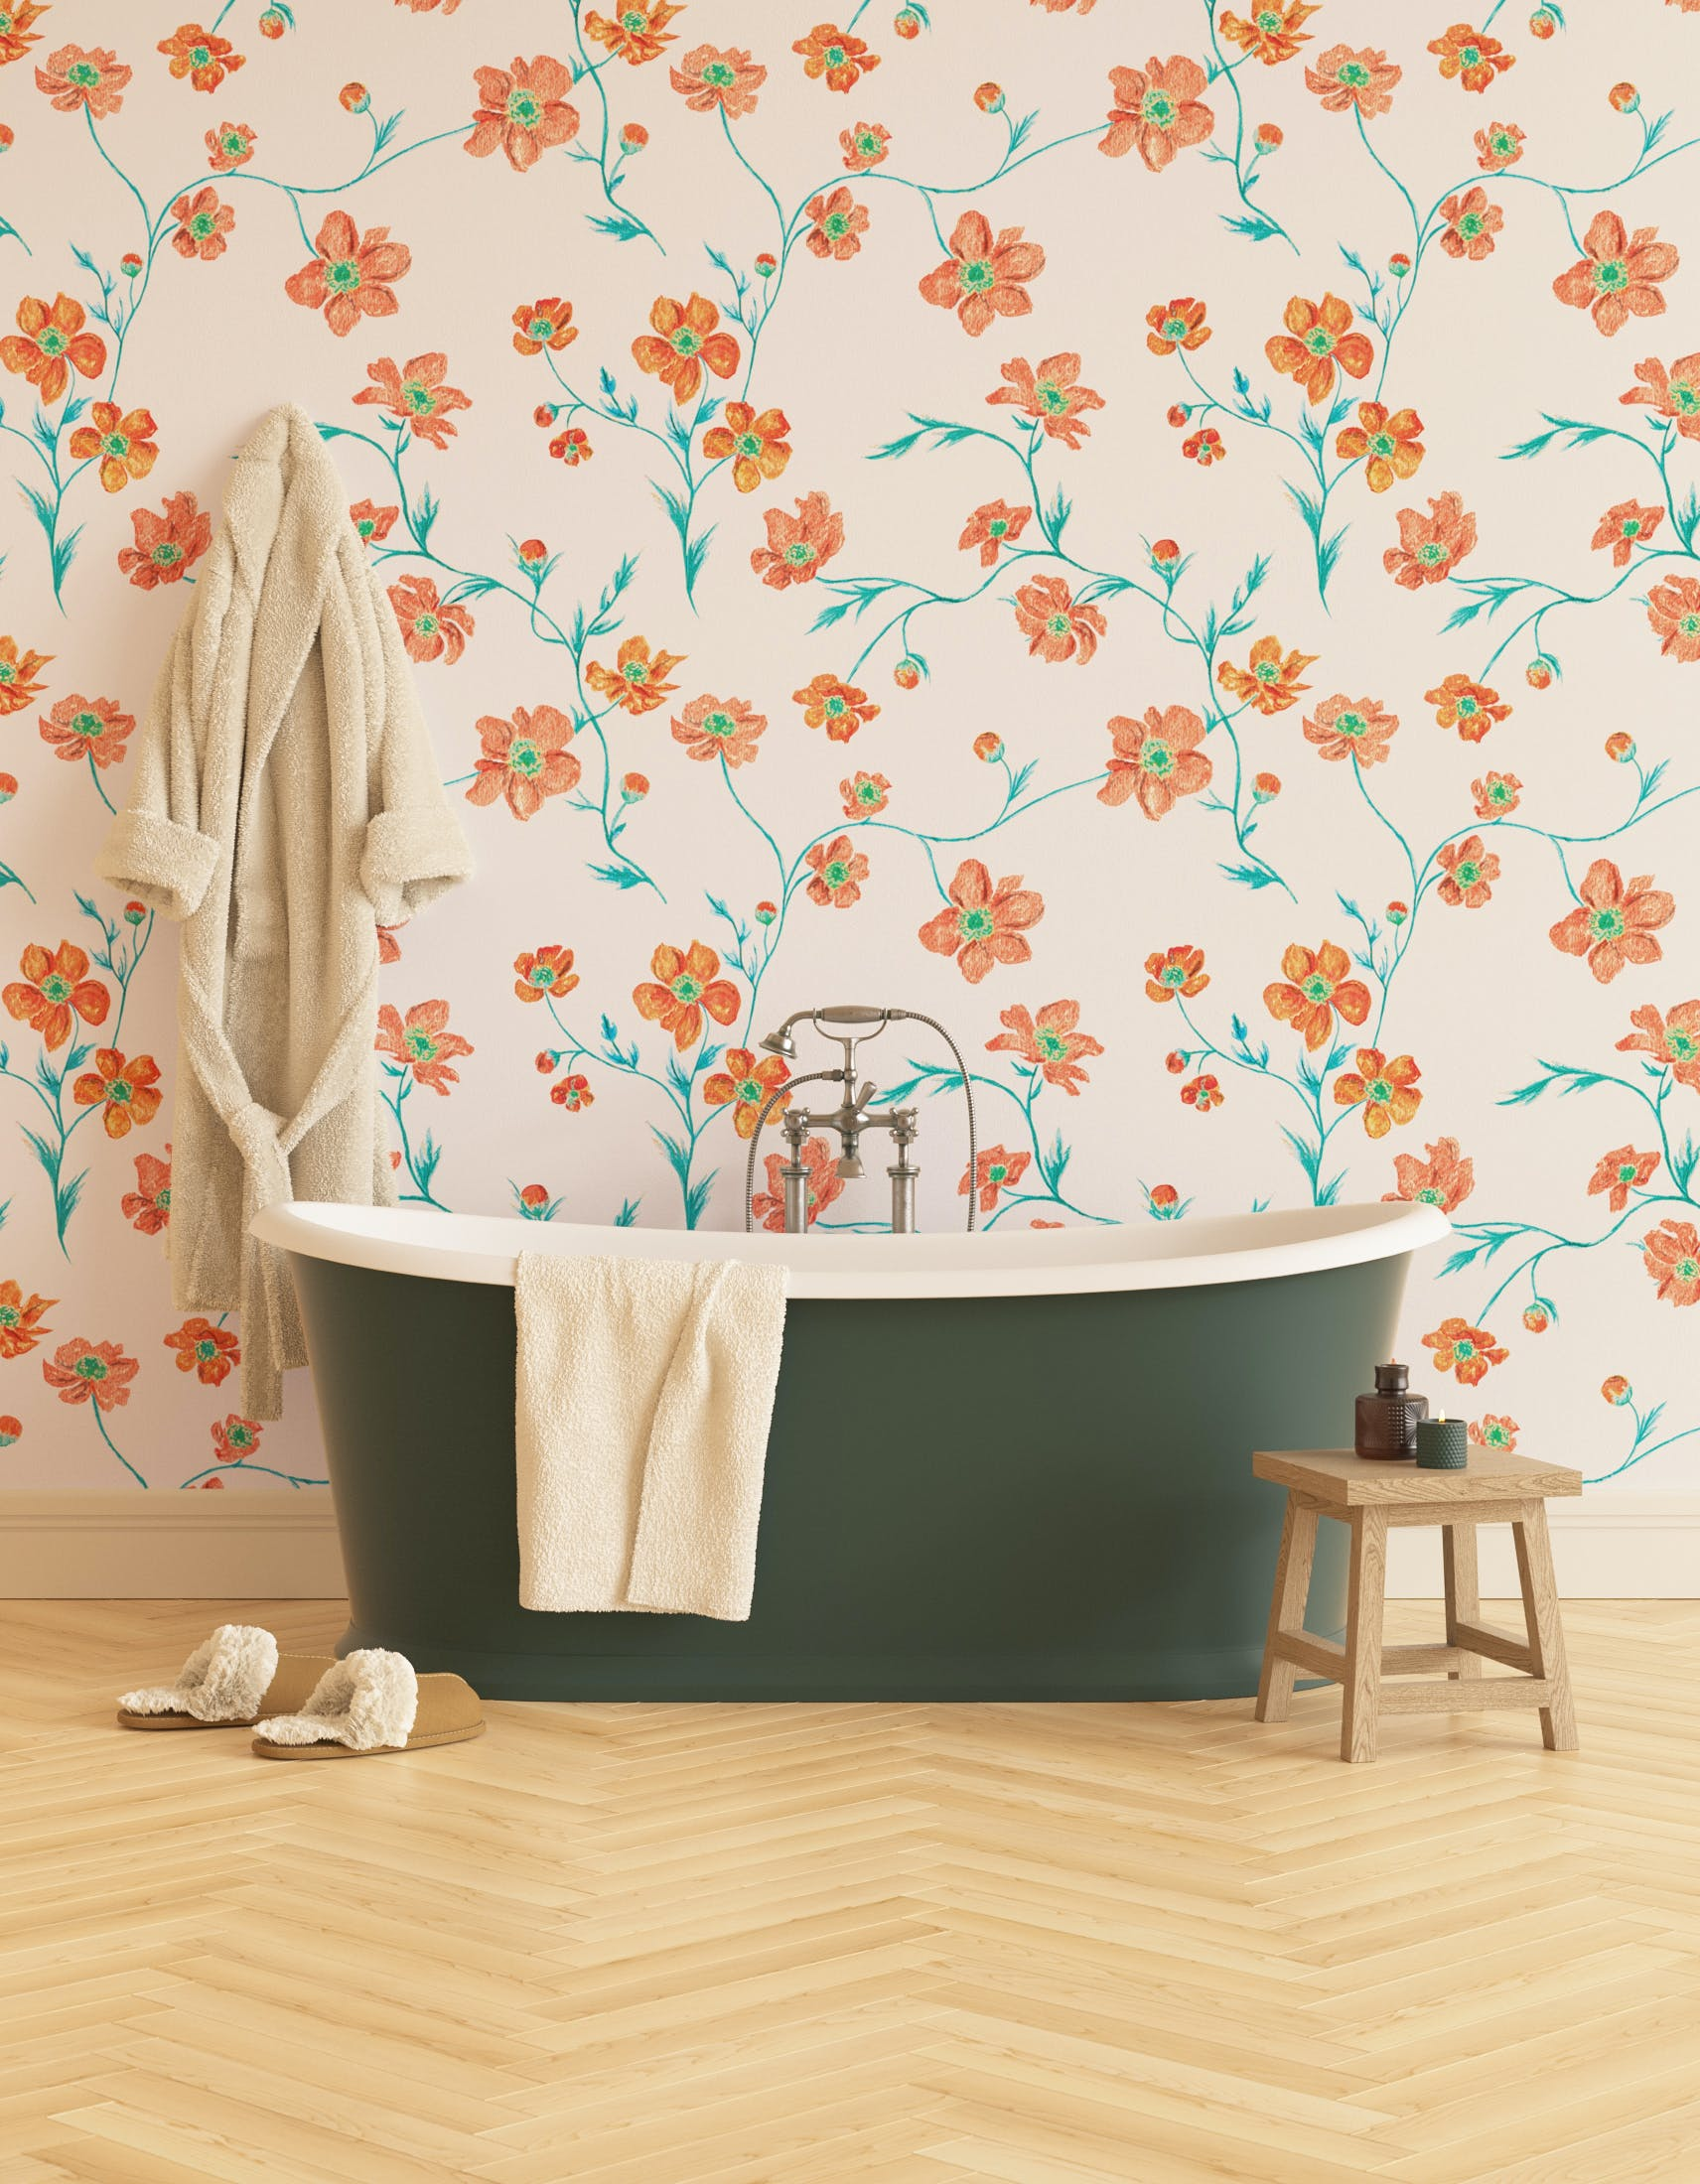 Lick x Jenna Hewitt Anemone 02 orange floral wallpaper